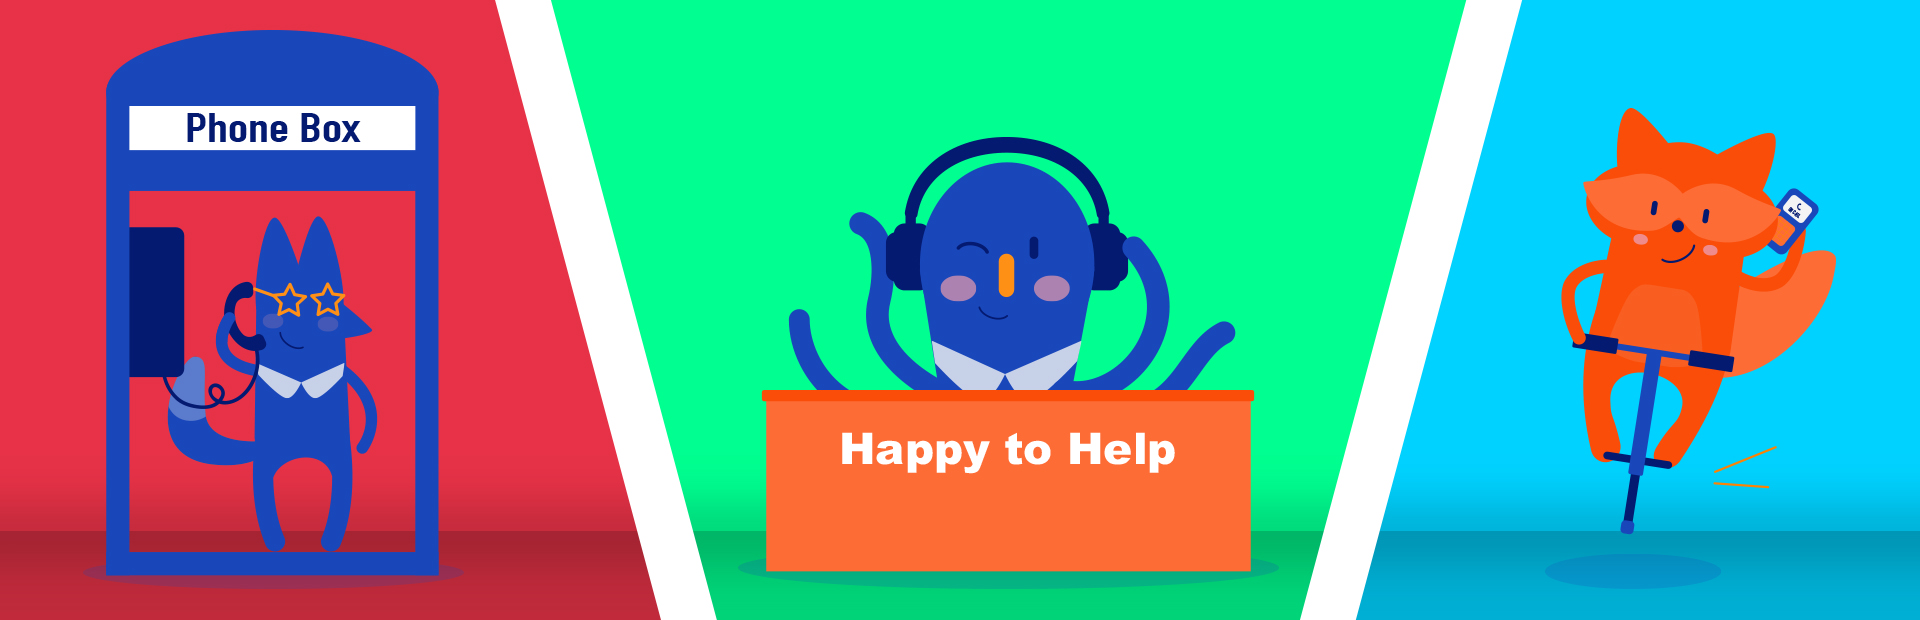 Three image sections, separated by diagonal lines: fox character on a phone box, octopus character on a desk with headphones, raccoon on pogo stick holding a mobile phone, representing The Printed Image's customer service and contact details